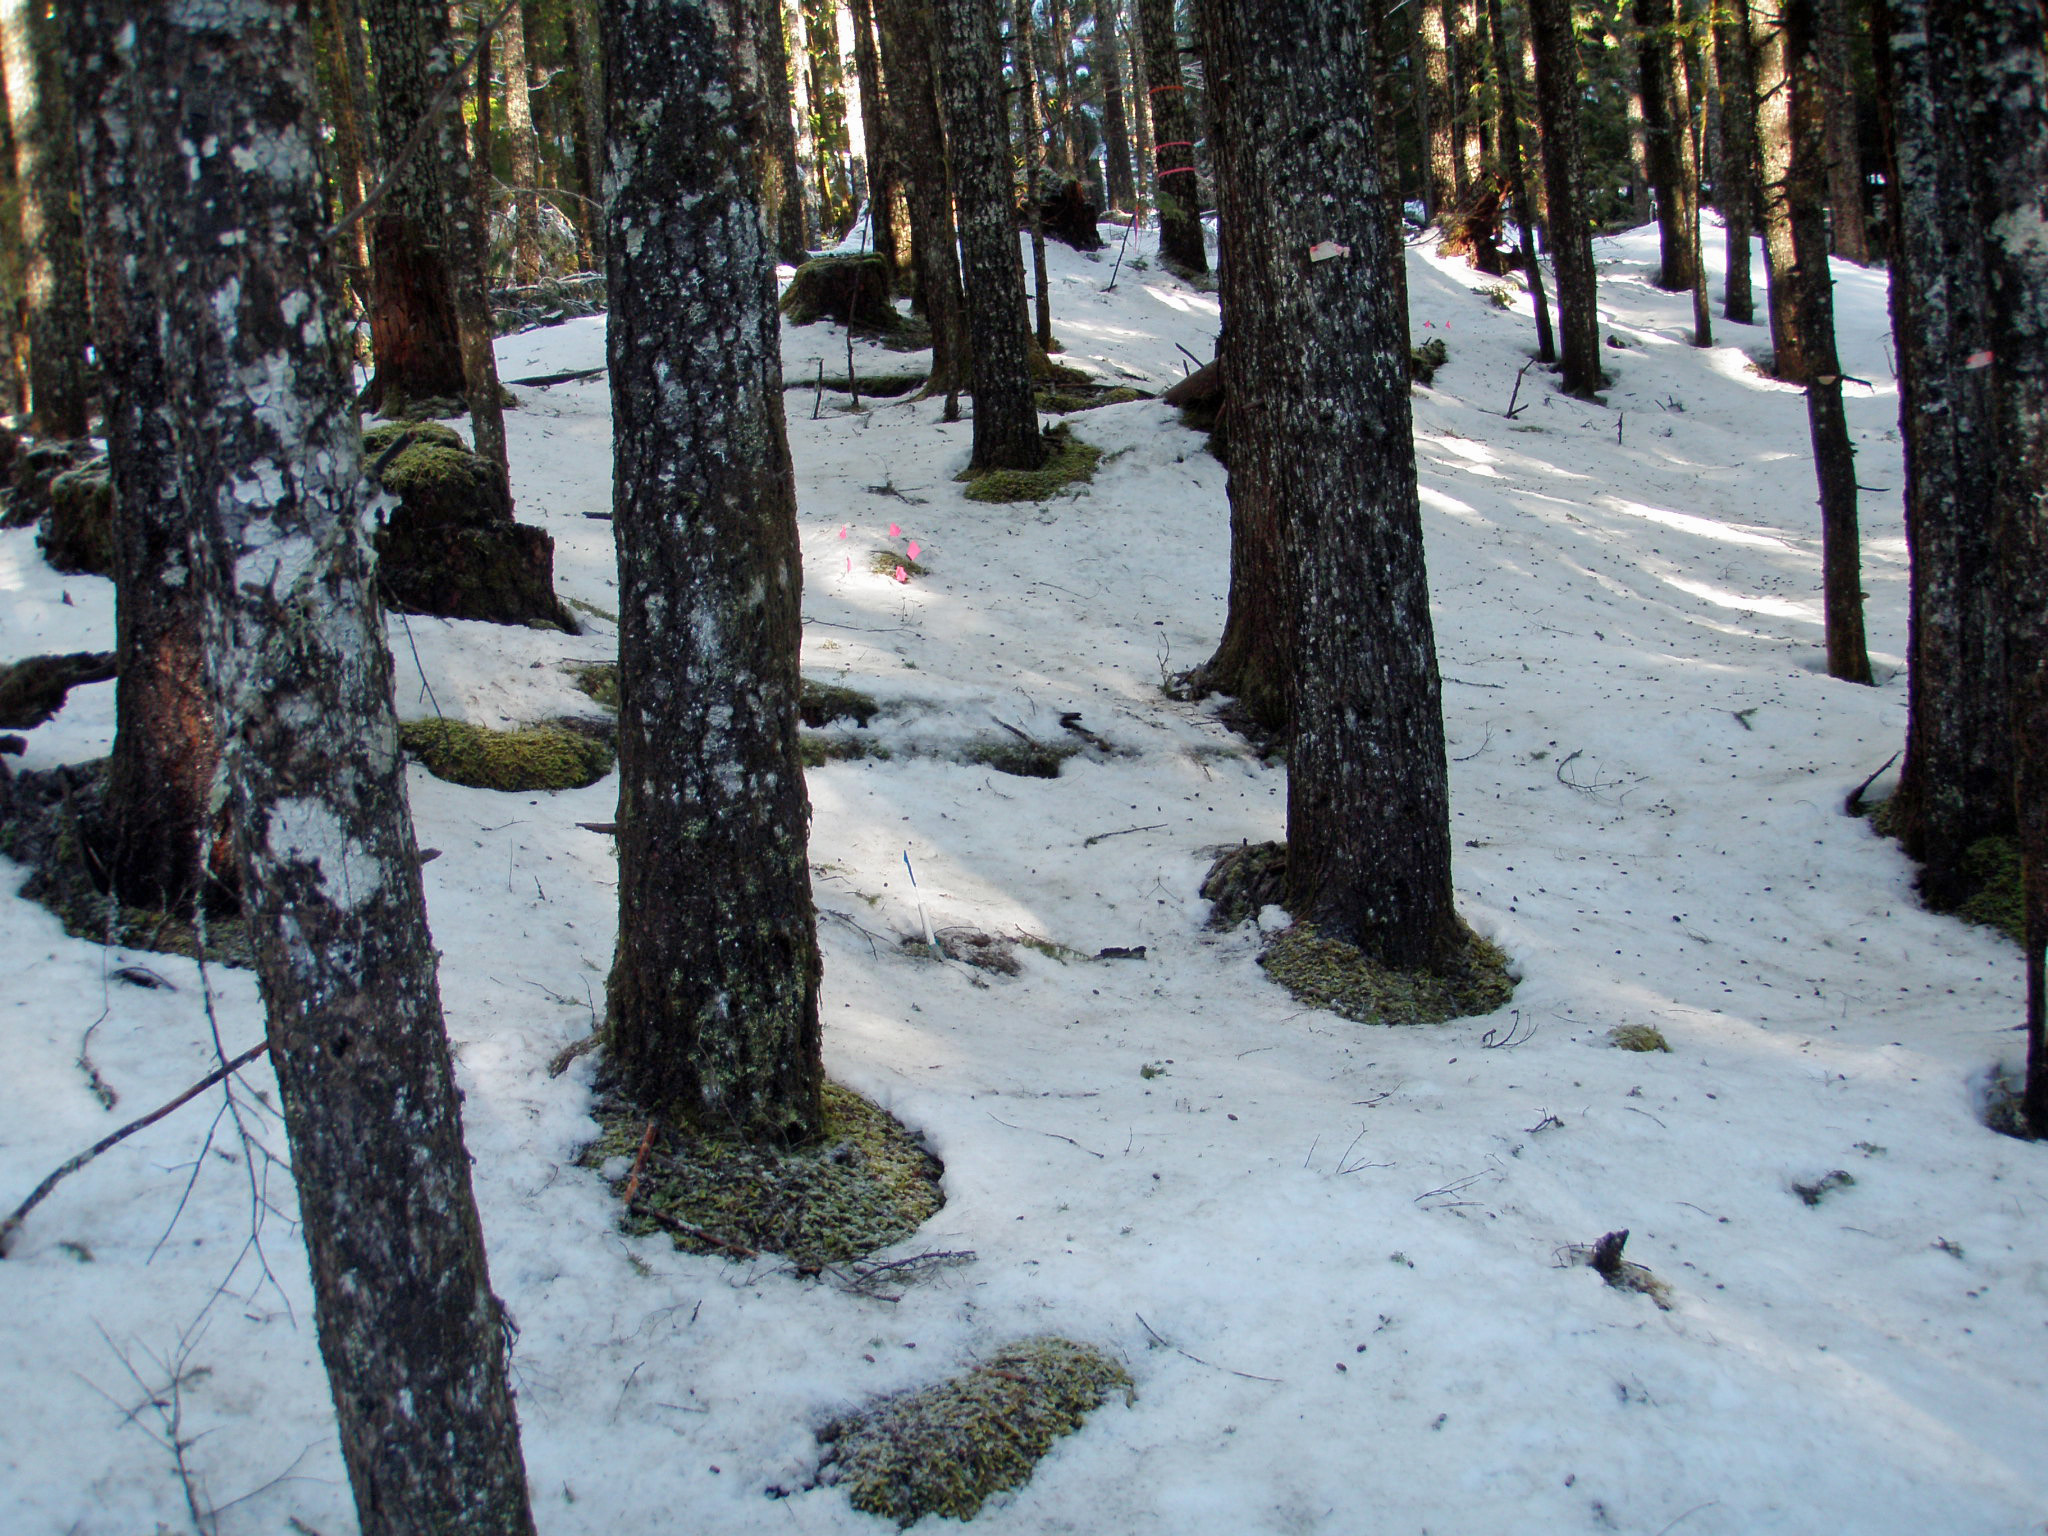 Snow is melting around the base of these trees in a dense, second-growth forest.